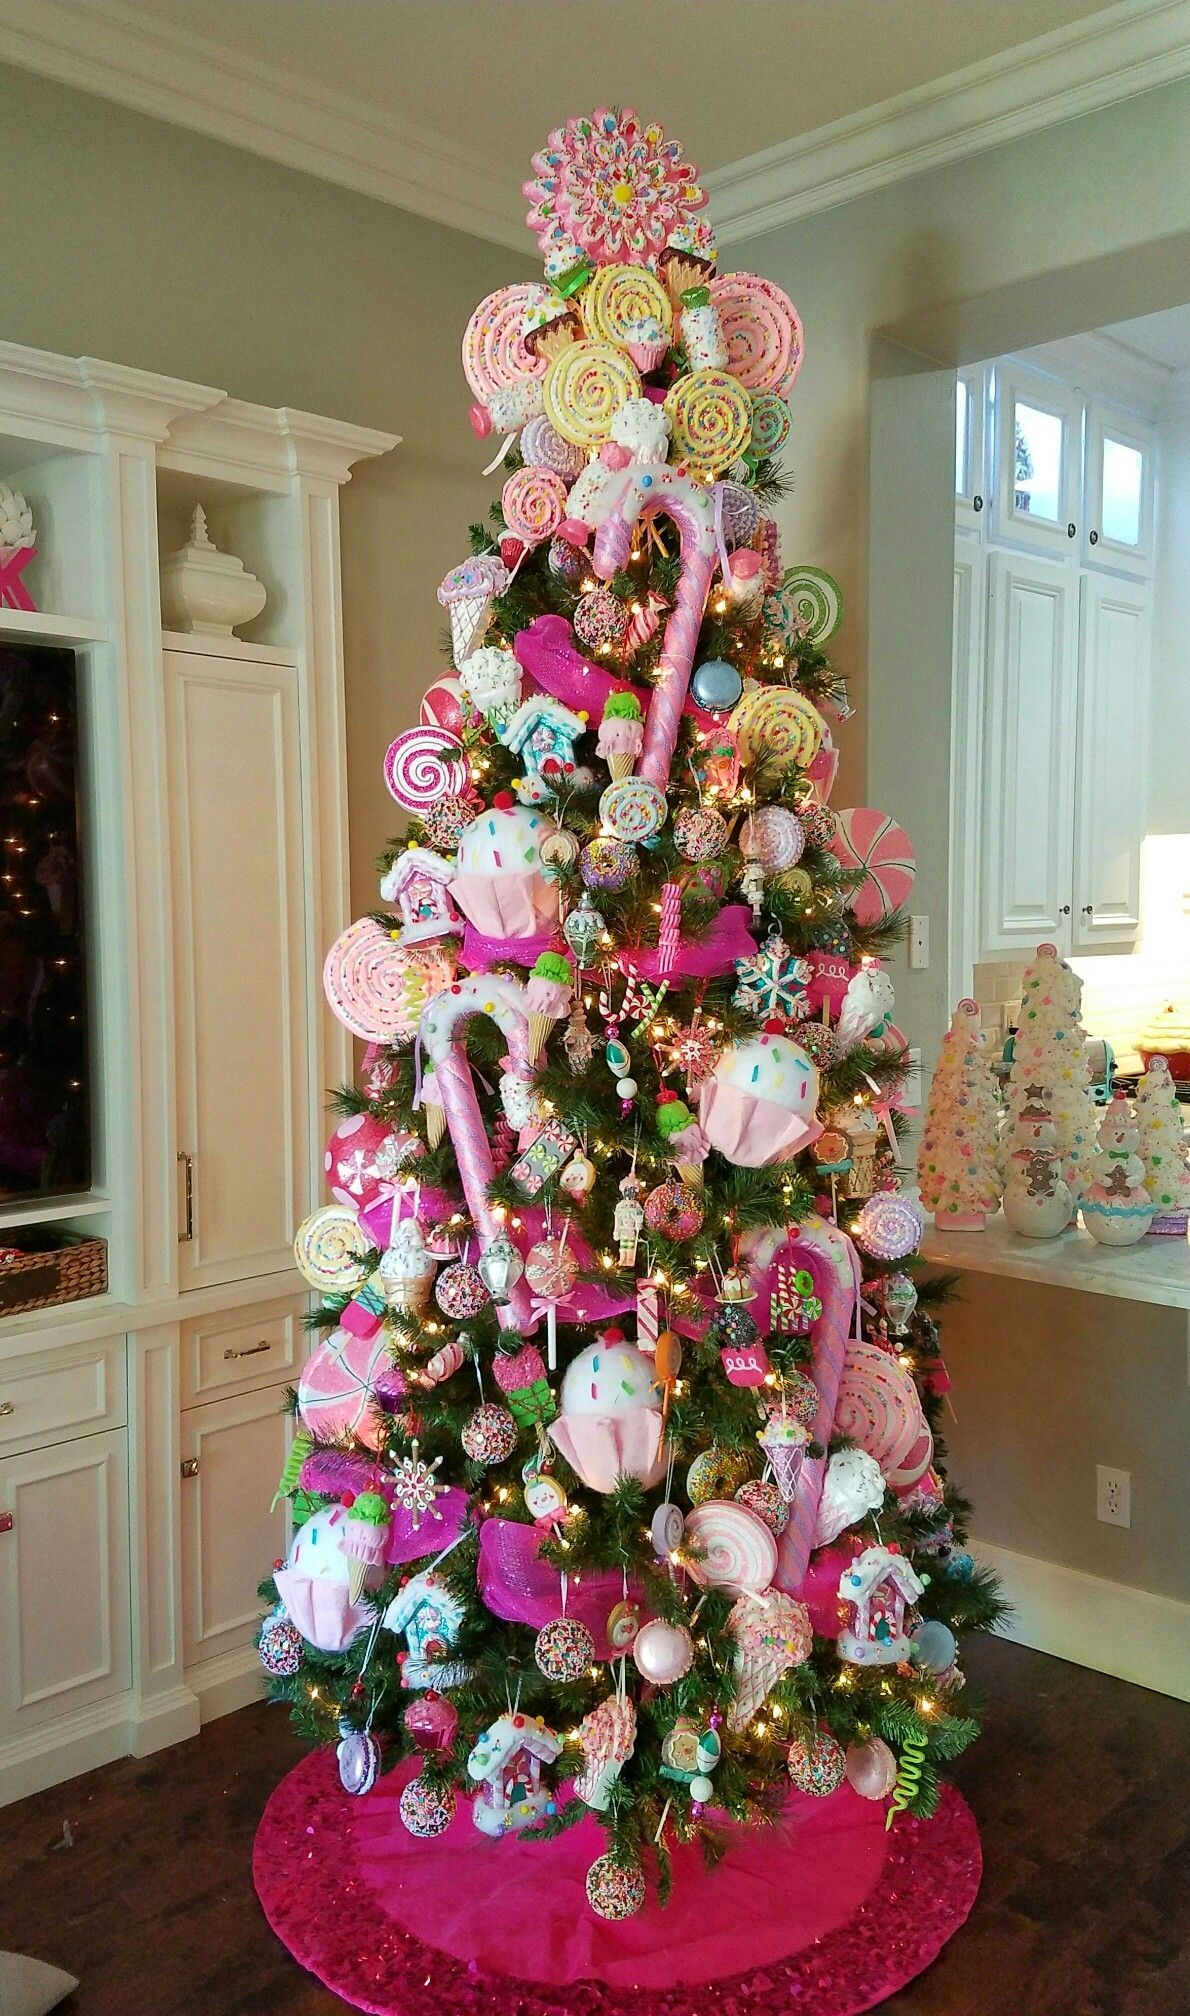 320d8f6cfbf8da4445e3e894ea8e1bd7 Jpg 1 190 2 016 Pixels Pink Christmas Decorations Candy Christmas Tree Pink Christmas Tree Decorations